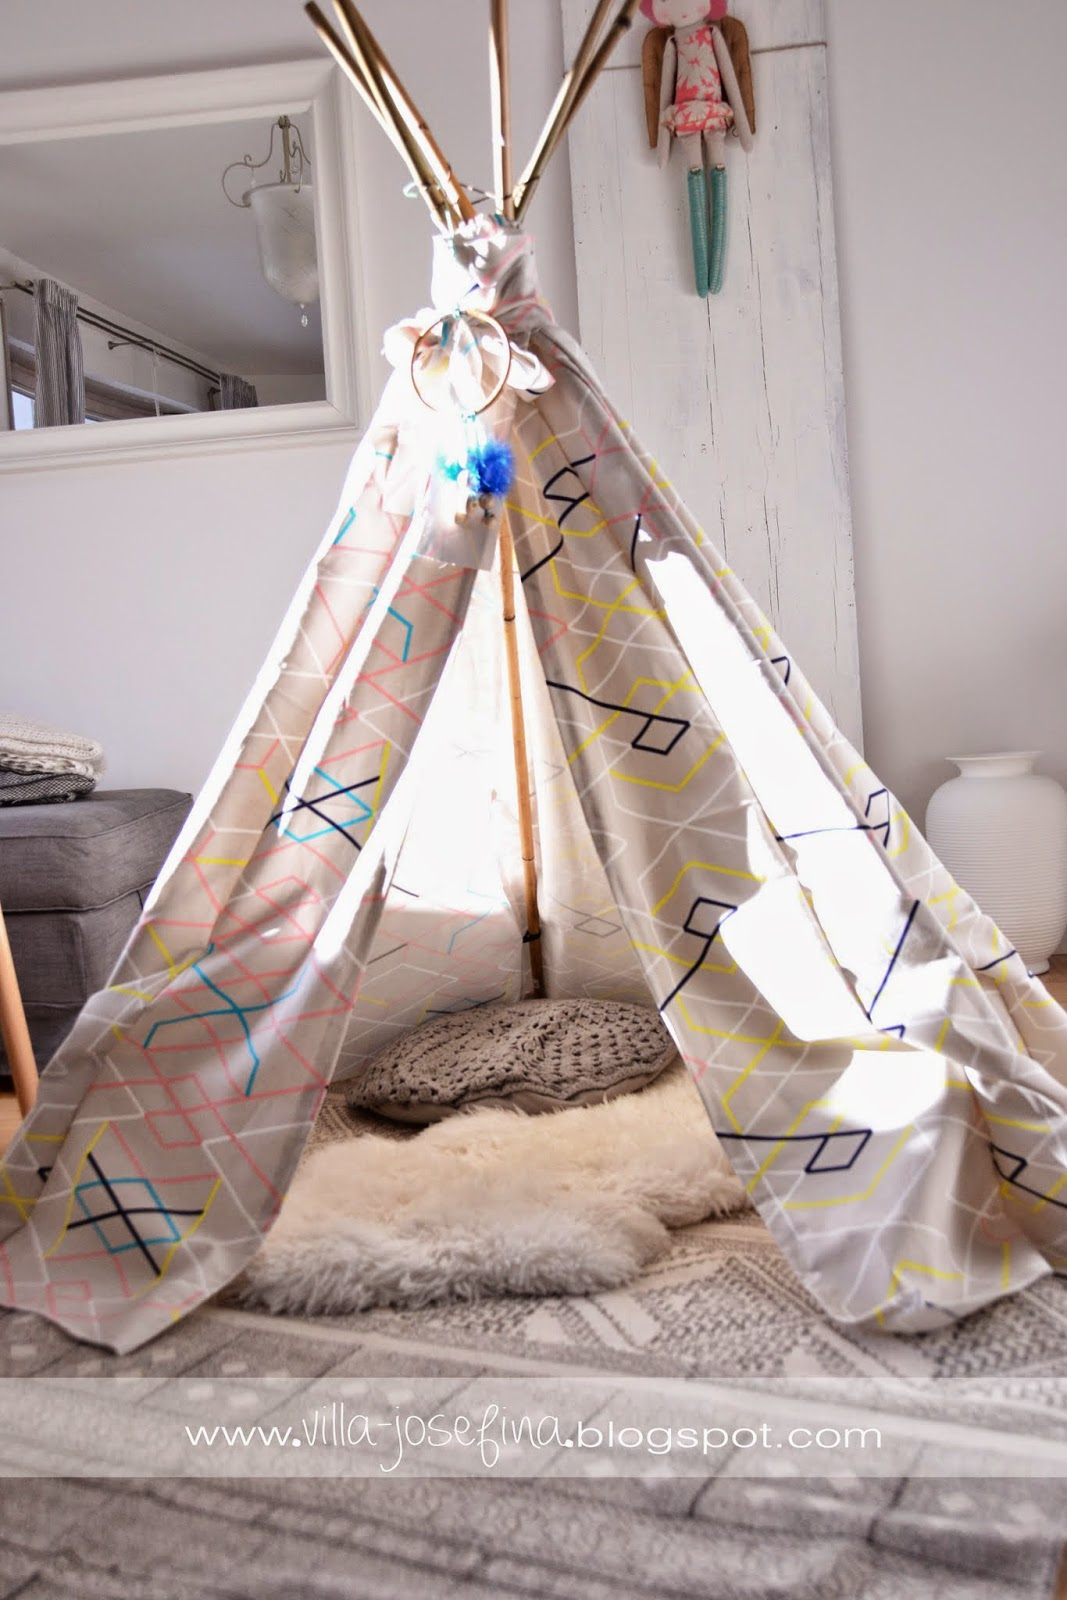 ein tipi is in the house diy gen ht und last minute faschingsverkleidungsideen villa josefina. Black Bedroom Furniture Sets. Home Design Ideas